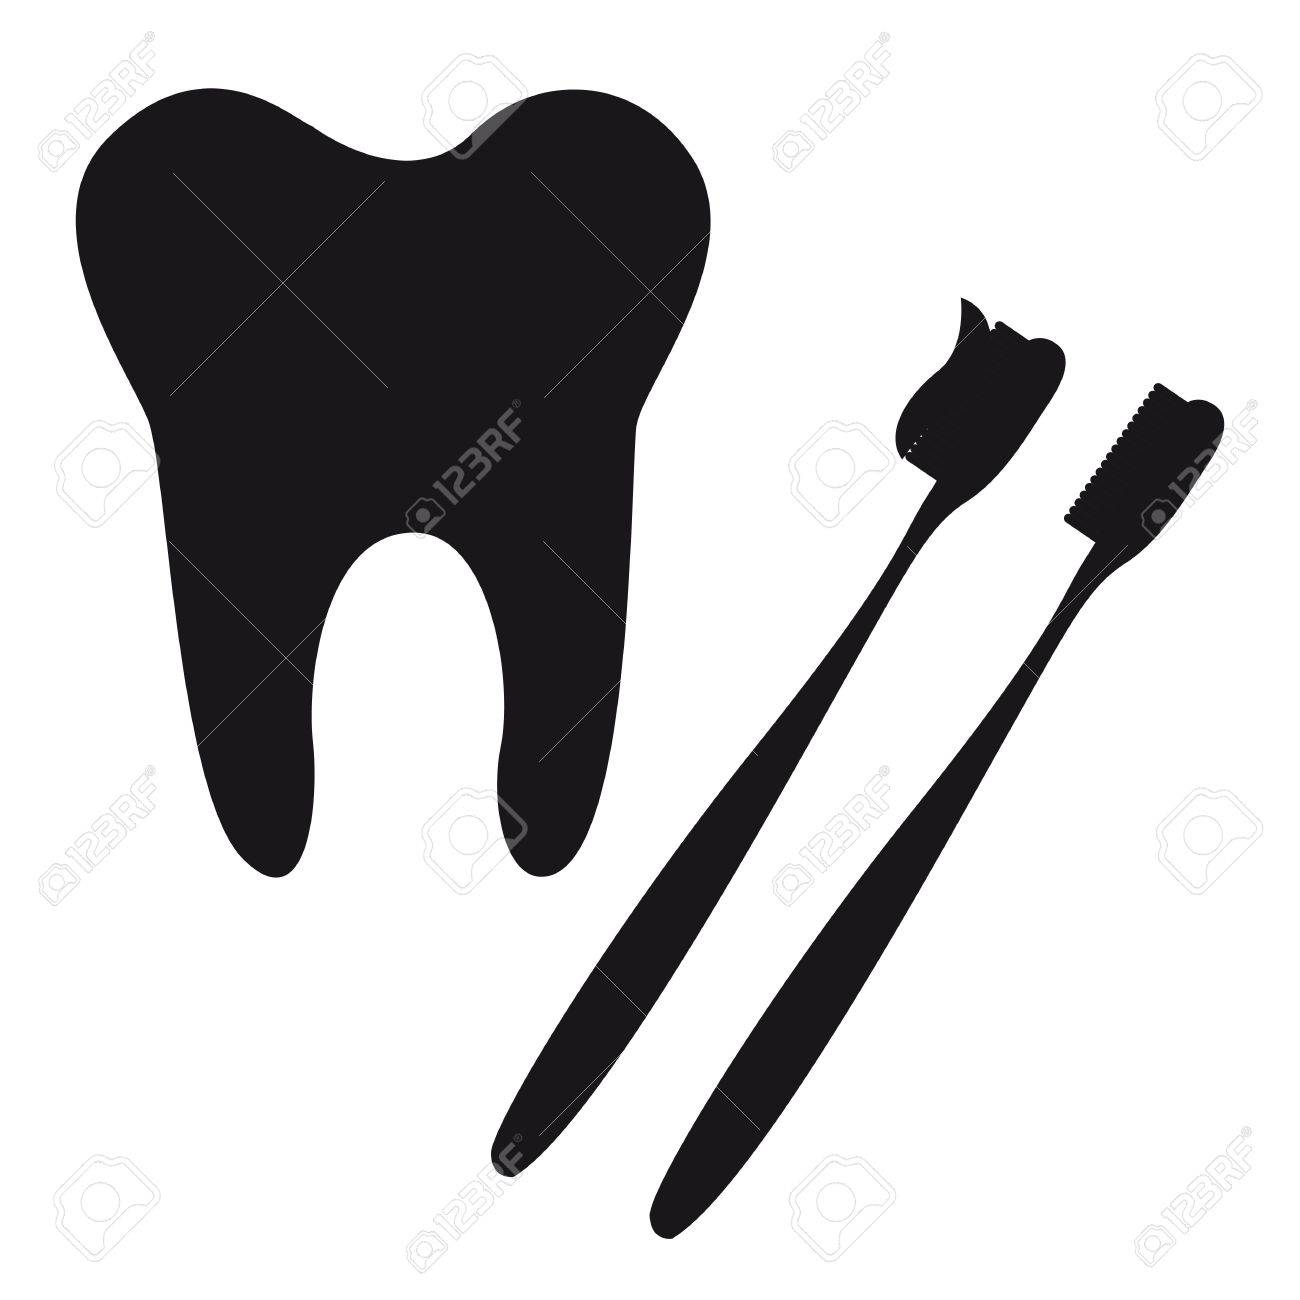 tooth and toothbrush silhouette isolated vector illustration Stock Vector - 11657385